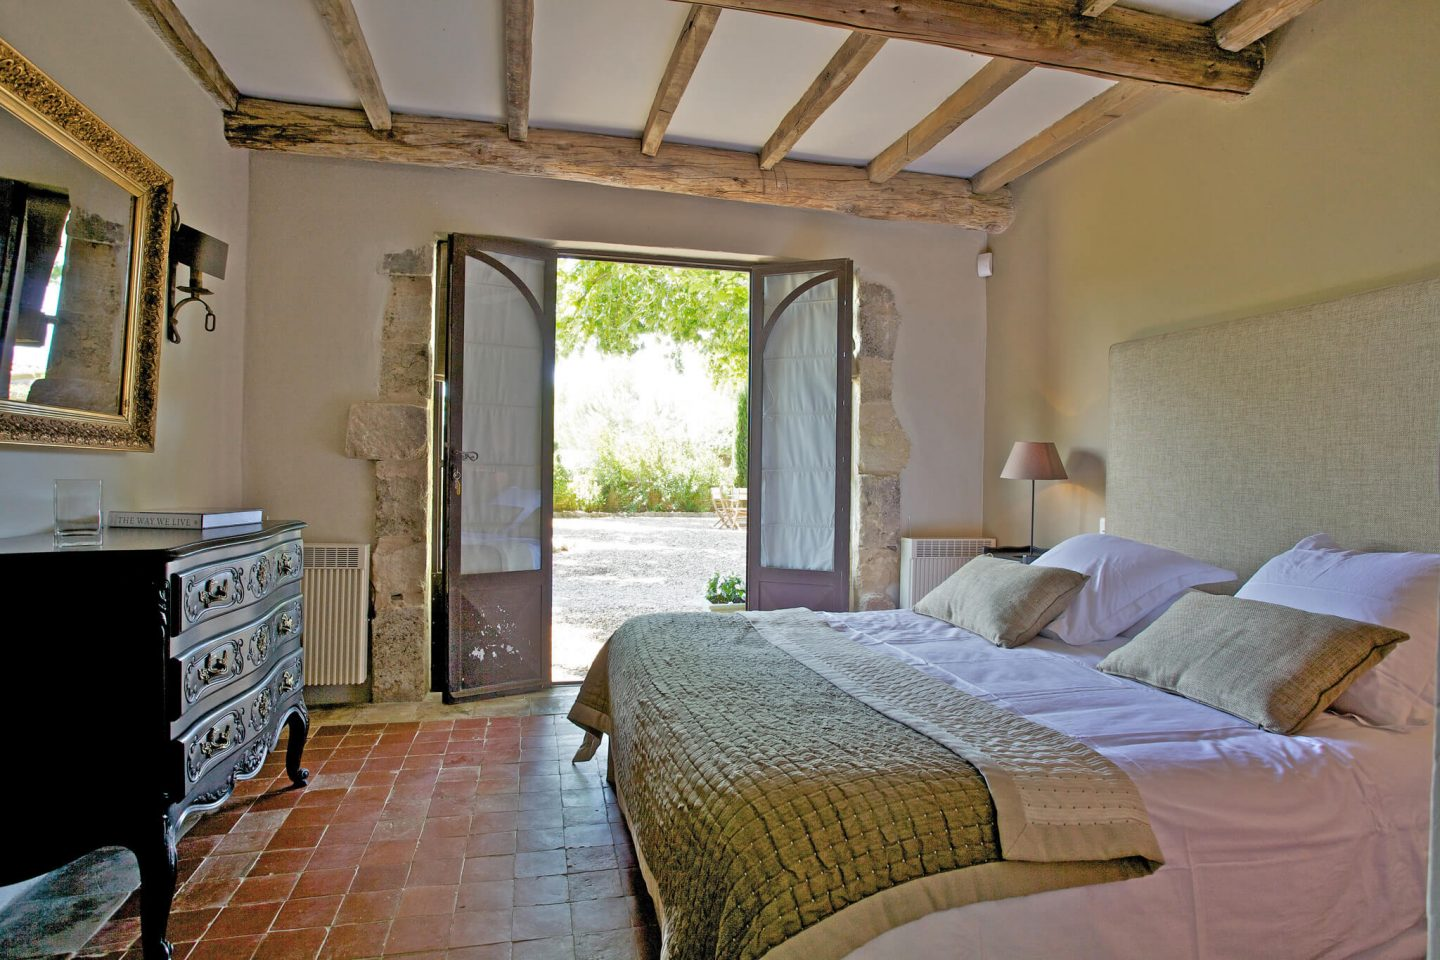 Provençal Bastide Beauty & Old World Inspiration